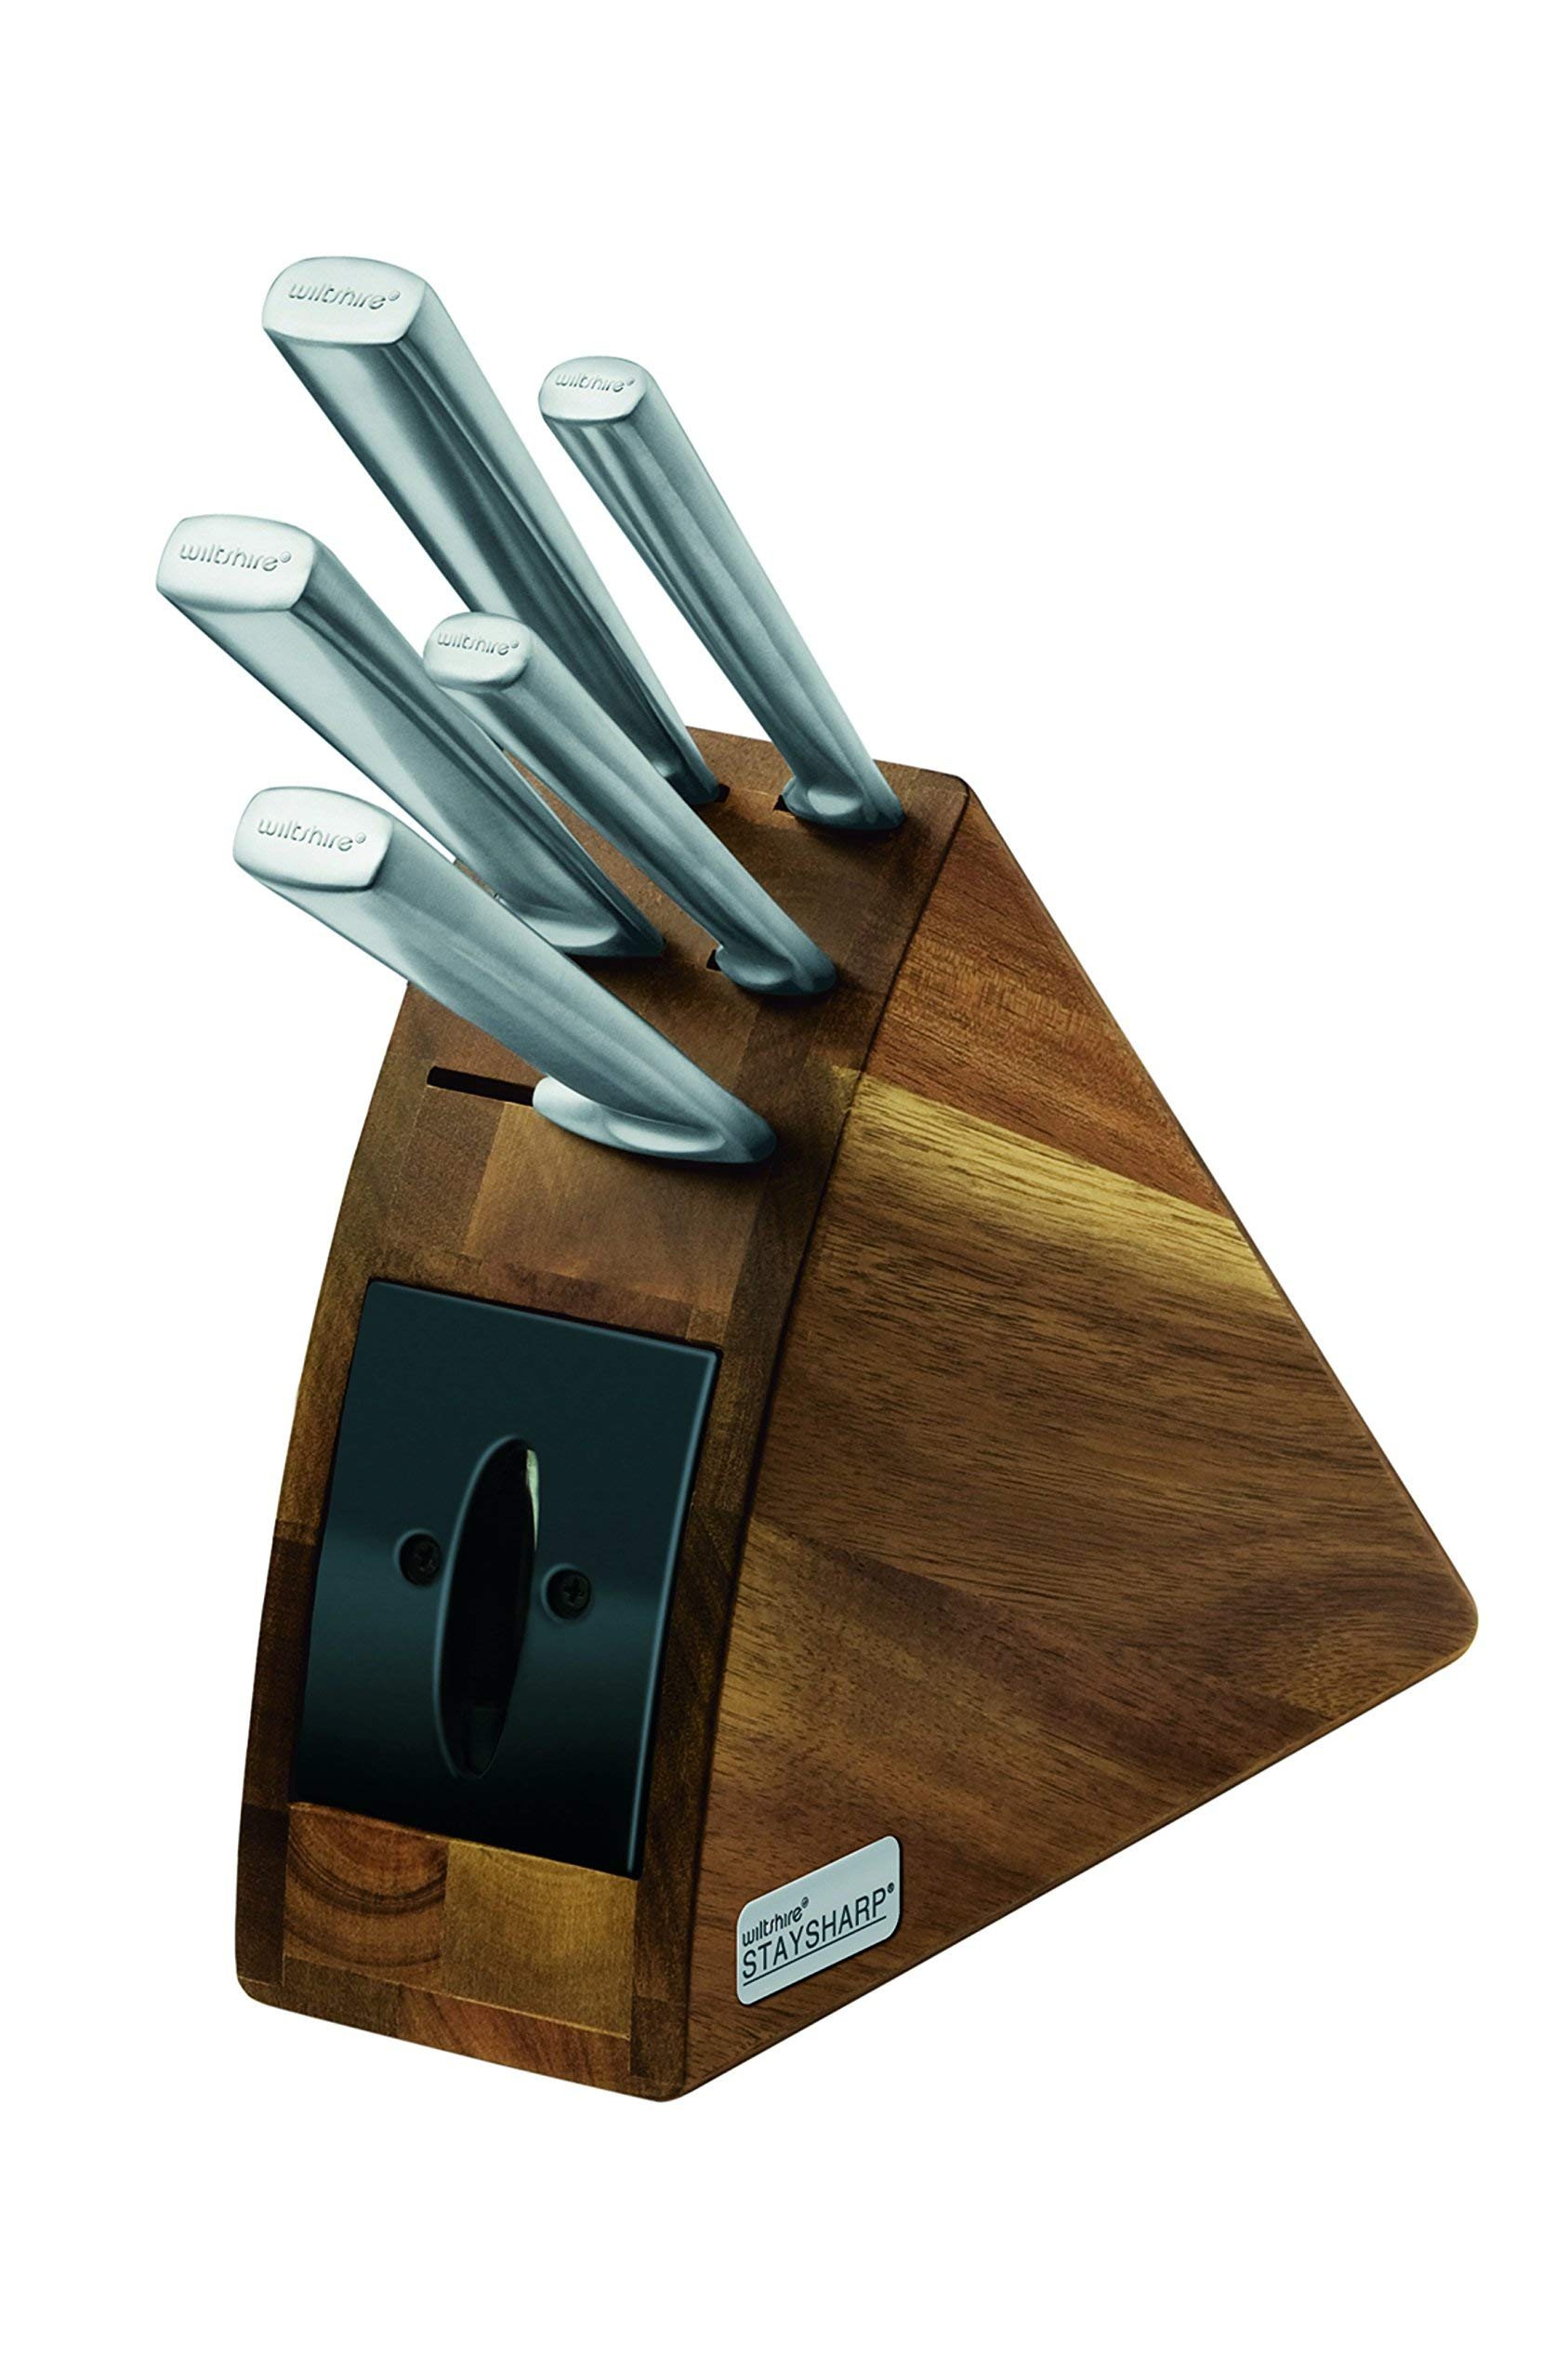 Wiltshire 6 piece Knife Block Set with Built in Sharpener and Locking Sheath